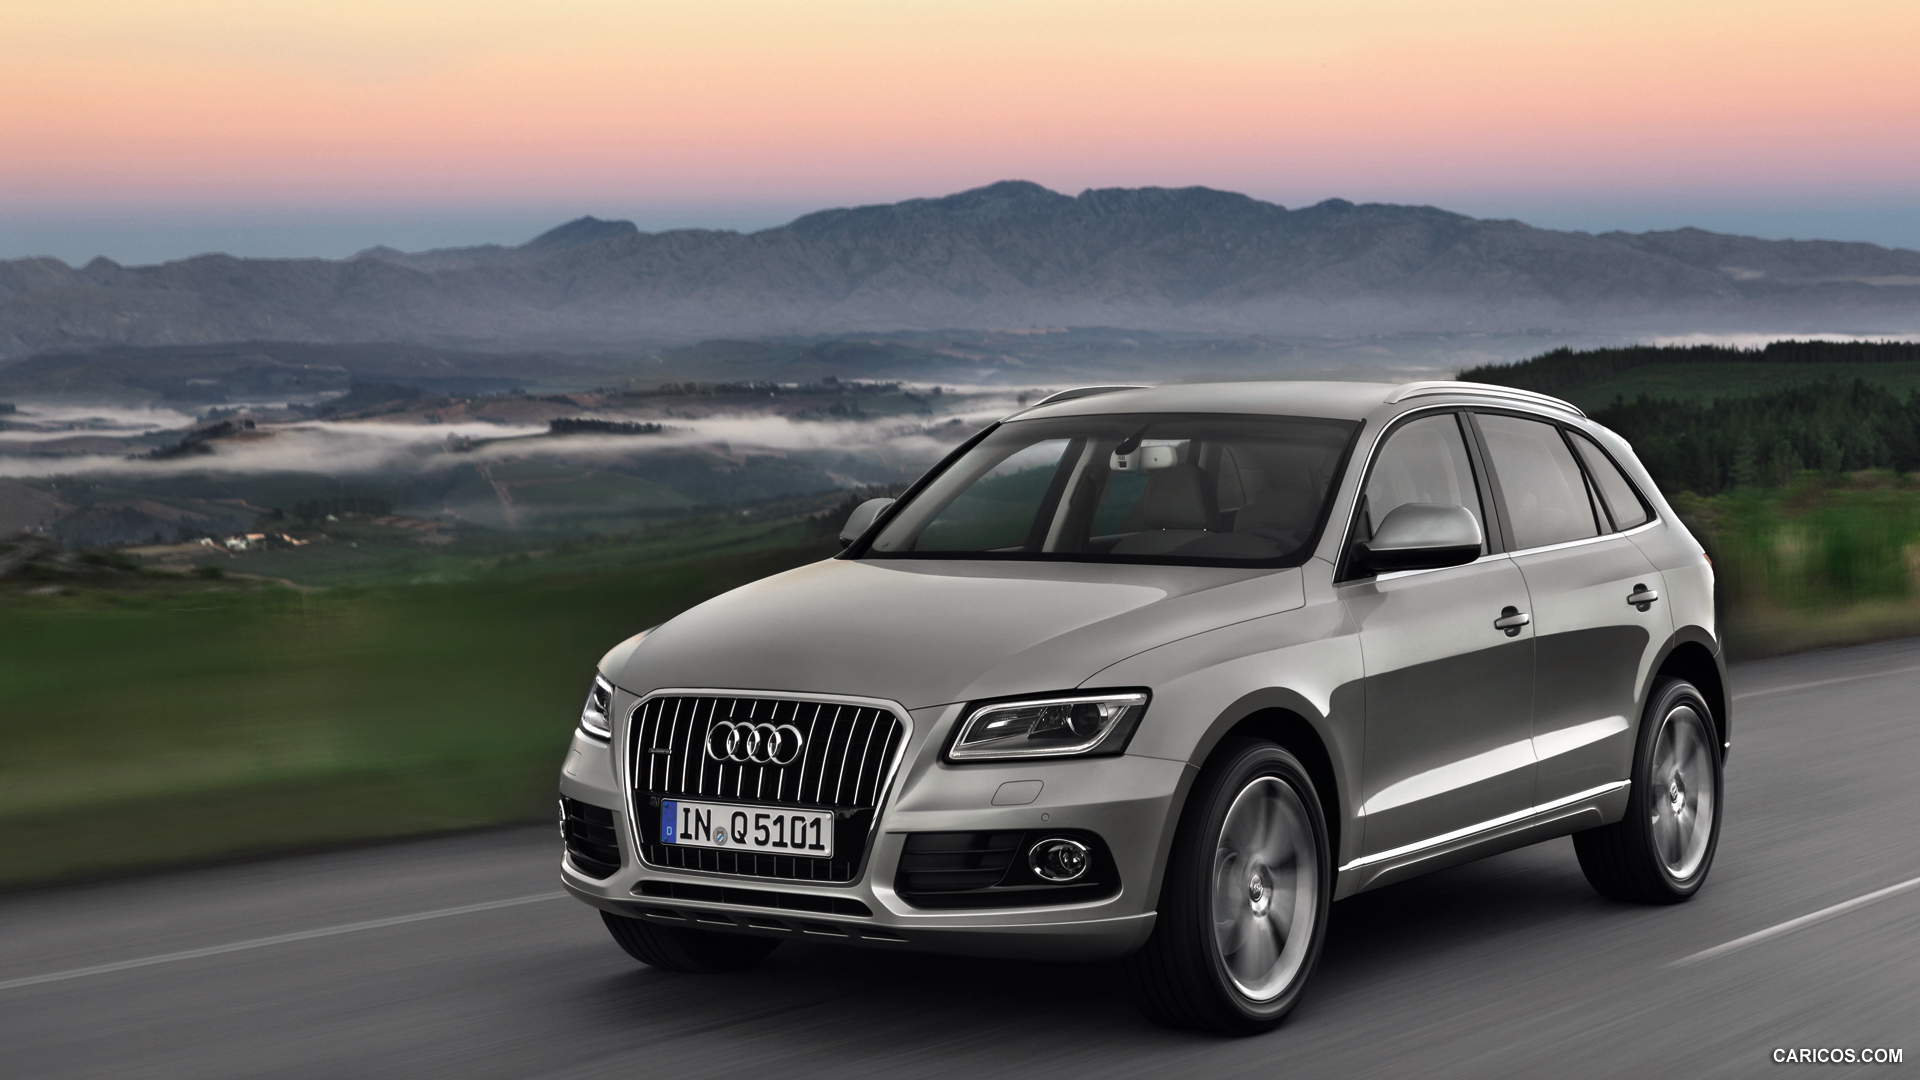 1920x1080 - Audi Q5 Wallpapers 12